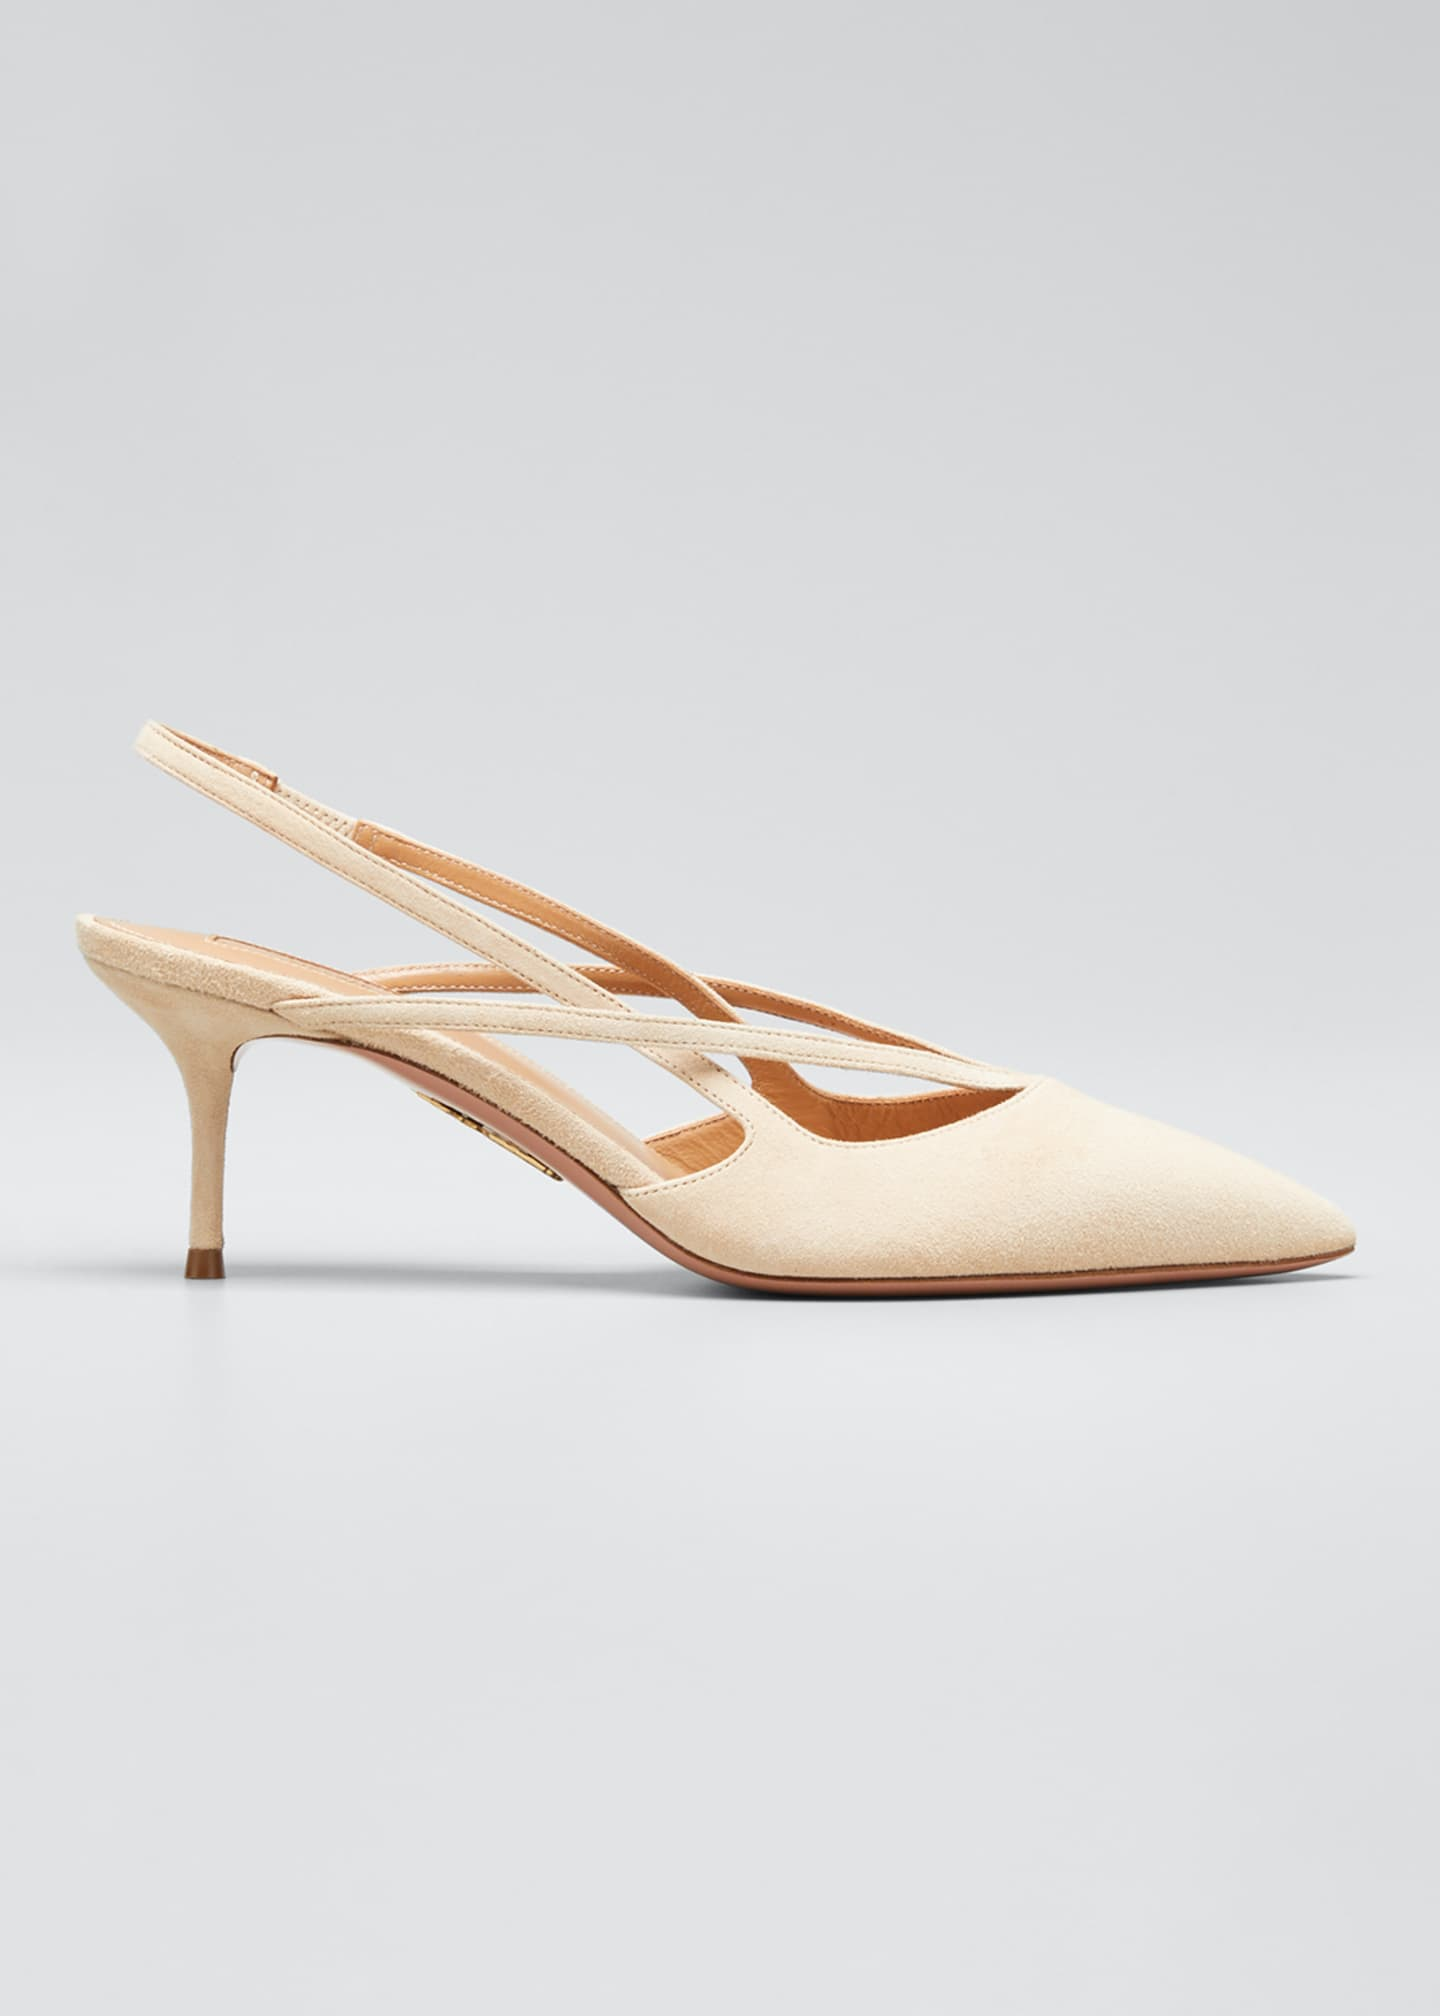 Aquazzura Soul Suede Pointed Pumps